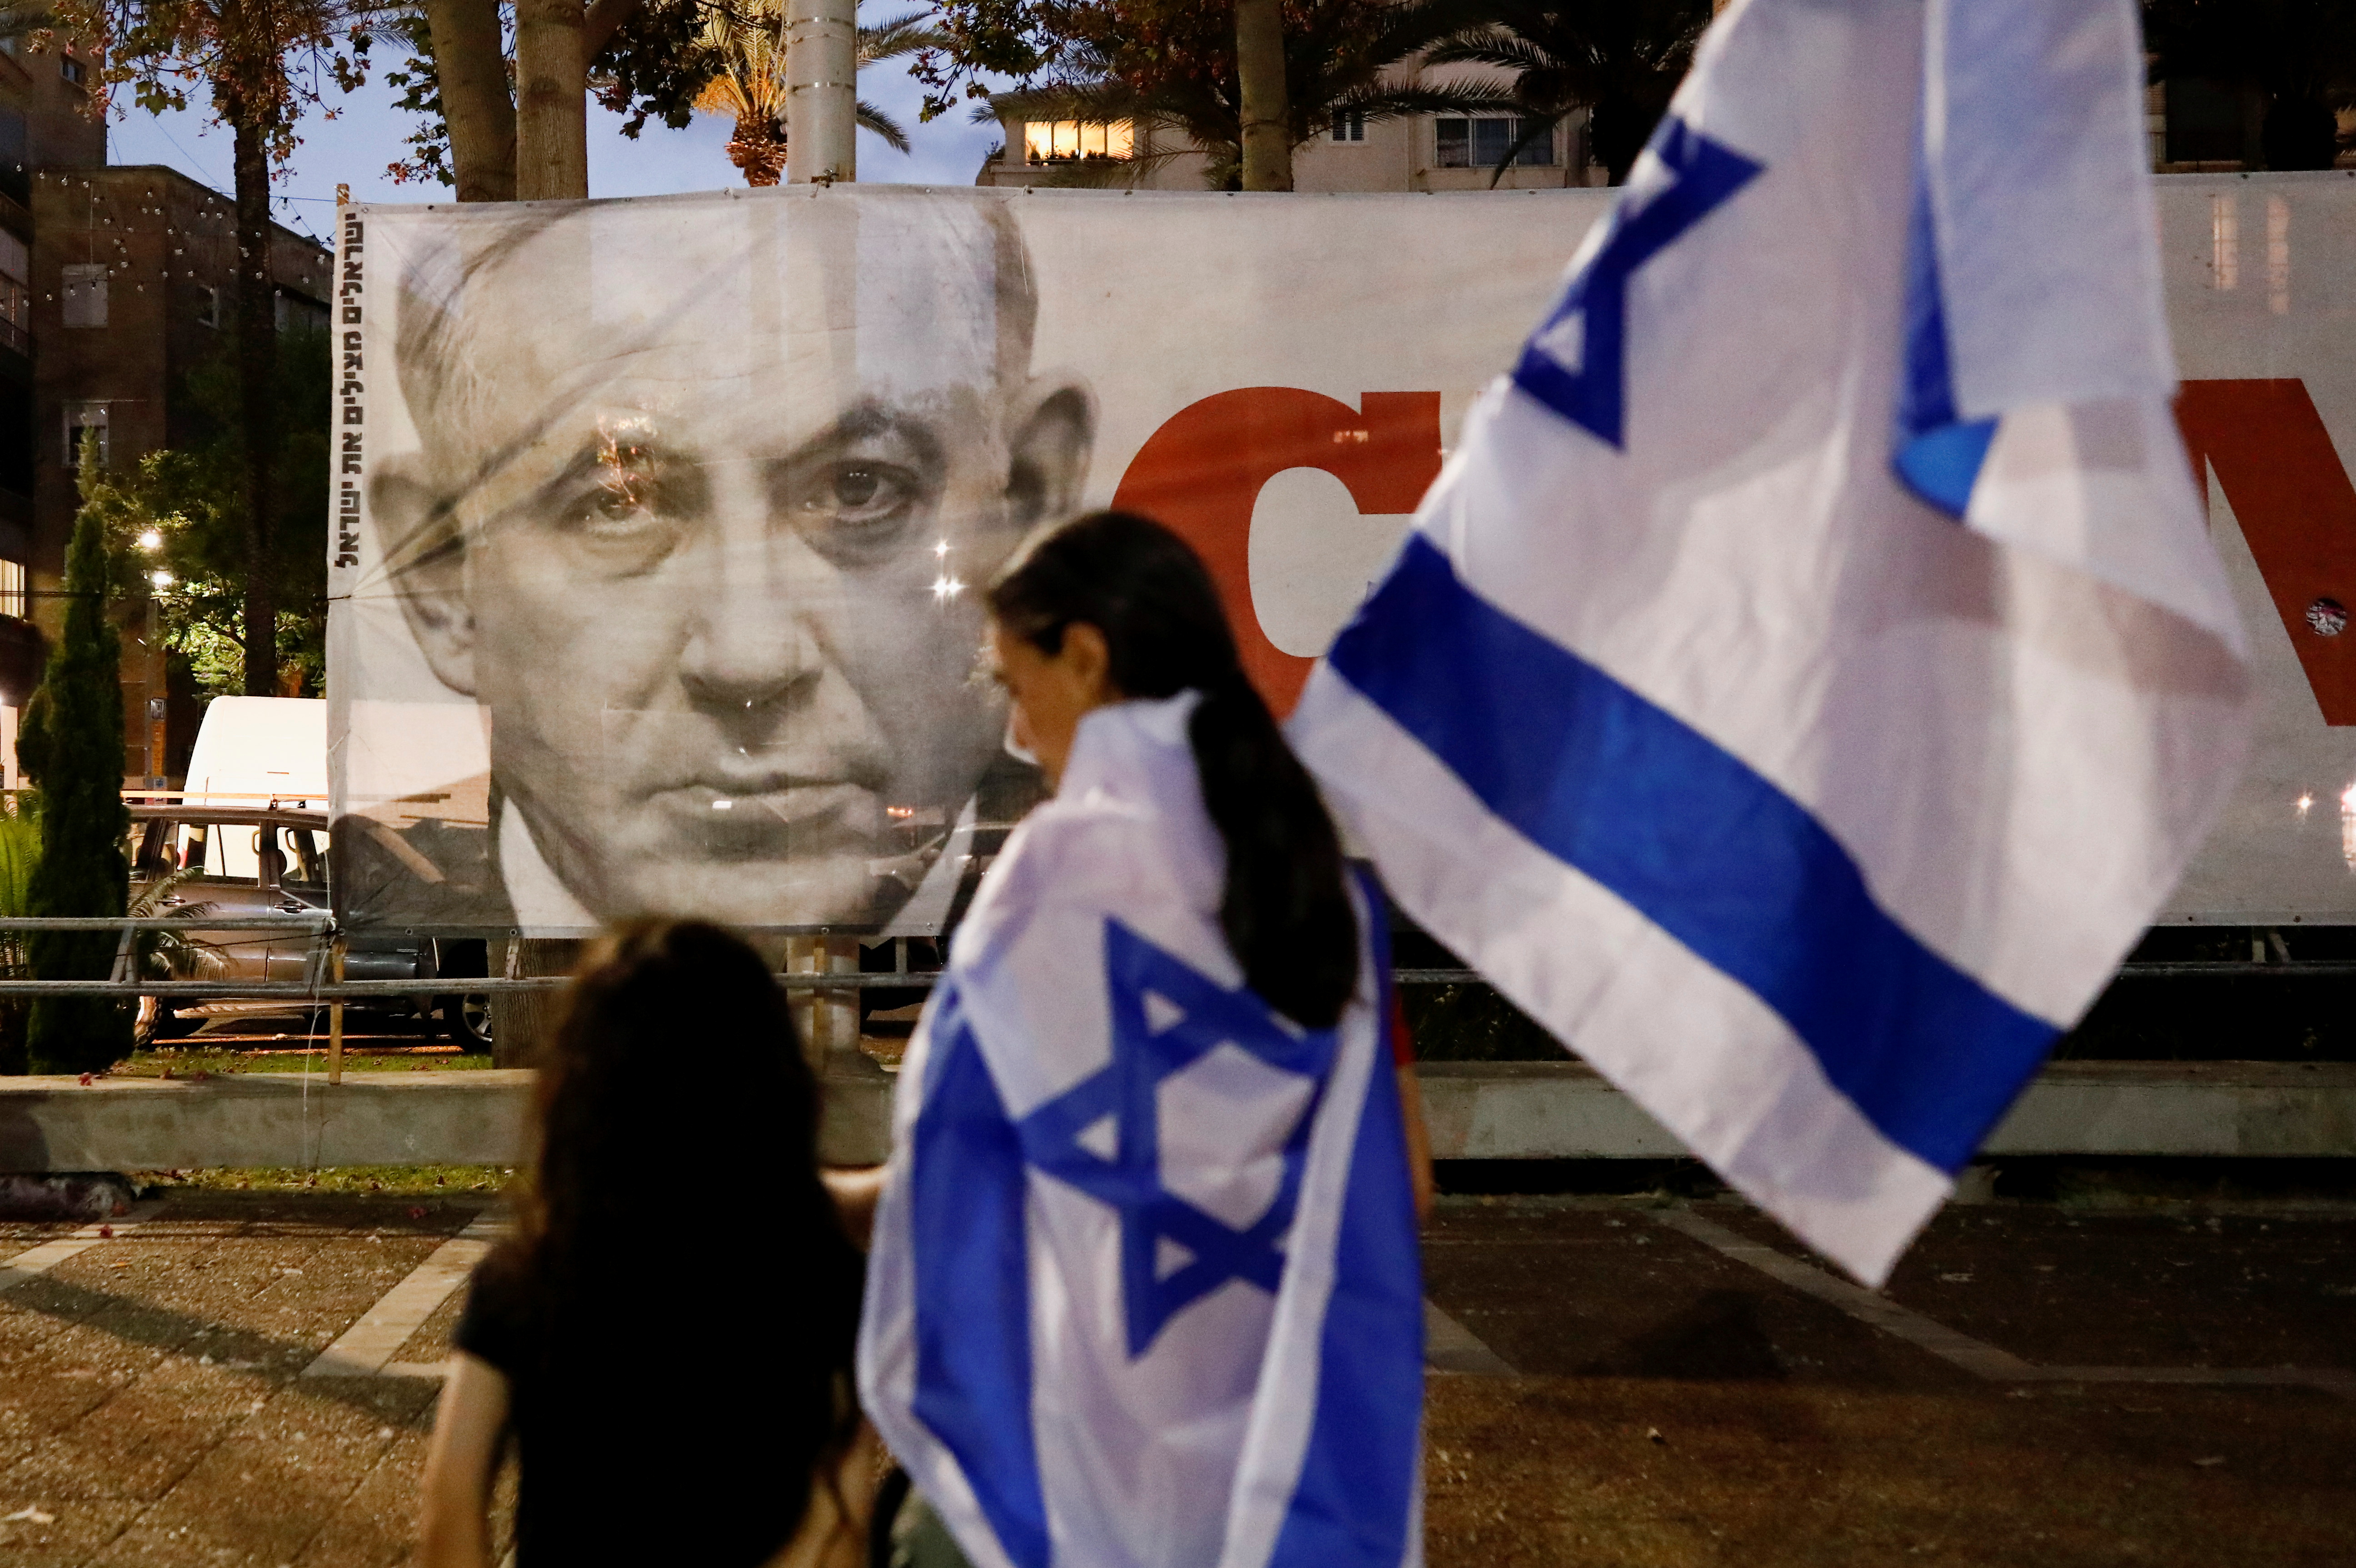 People walk in front of a picture of former Prime Minister Benjamin Netanyahu after Israel's parliament voted in a new coalition government, ending Netanyahu's 12-year hold on power, in Tel Aviv, Israel June 13, 2021. REUTERS/Corinna Kern